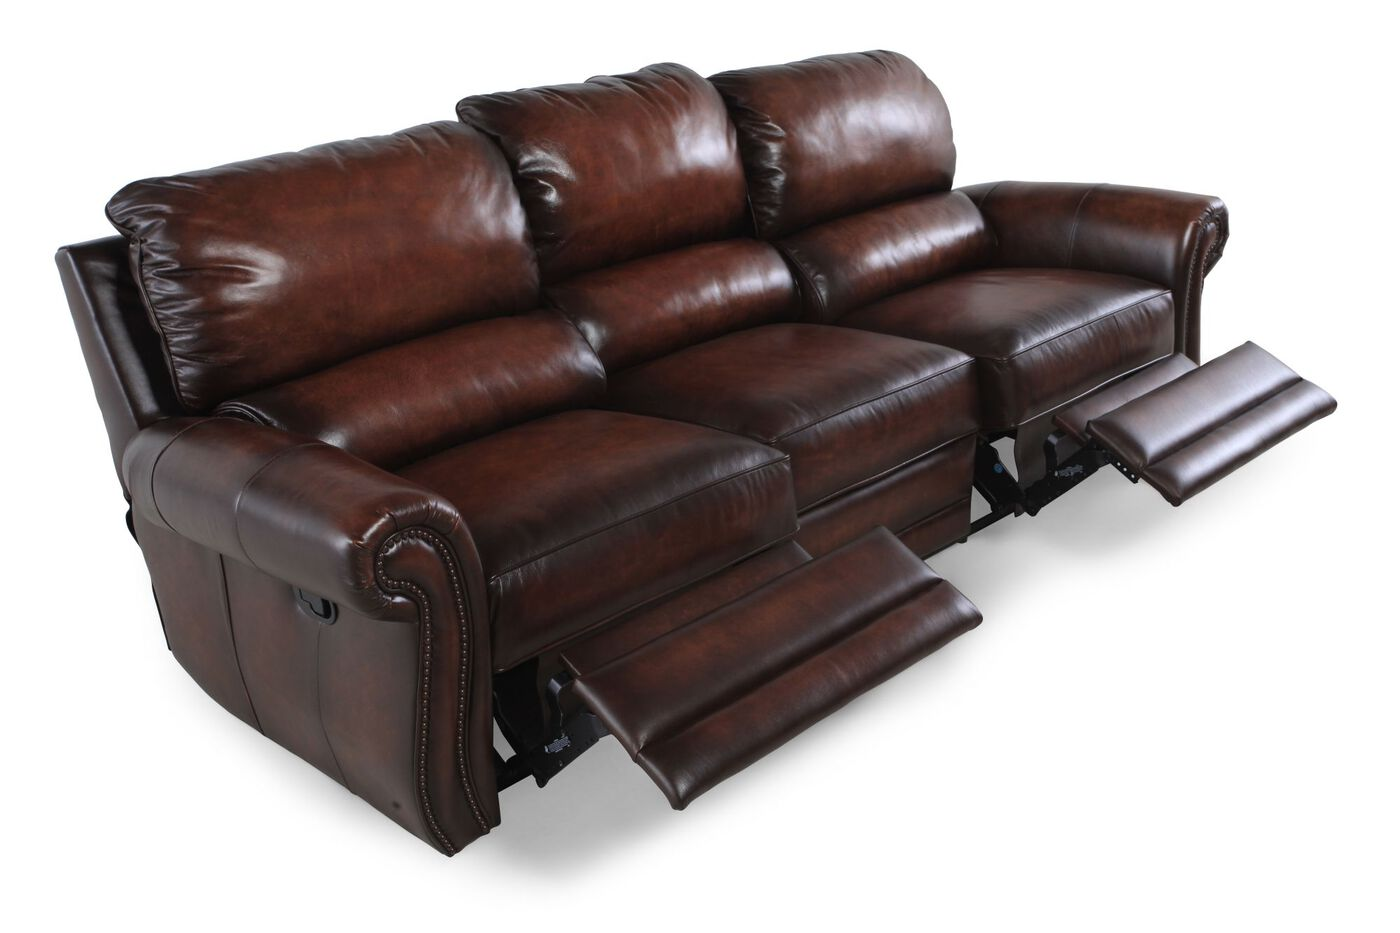 Bernhardt Reese Double Reclining Leather Sofa Mathis